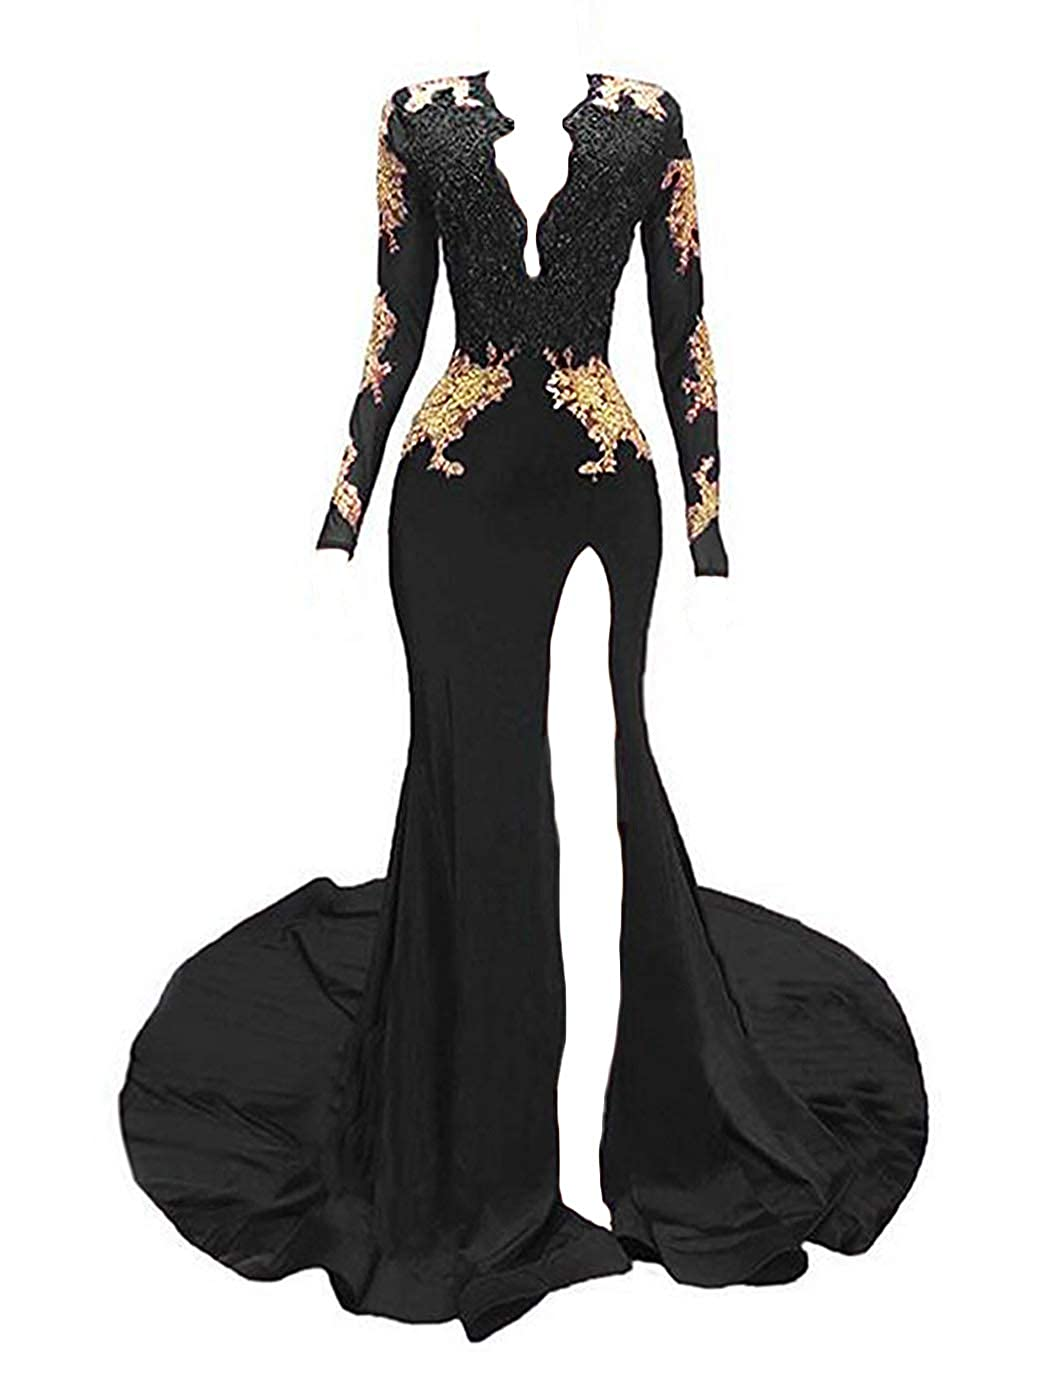 84def2846681 Dymaisei Women's Long Sleeves Prom Dresses 2019 Gold Appliques Mermaid Evening  Formal Dress at Amazon Women's Clothing store: